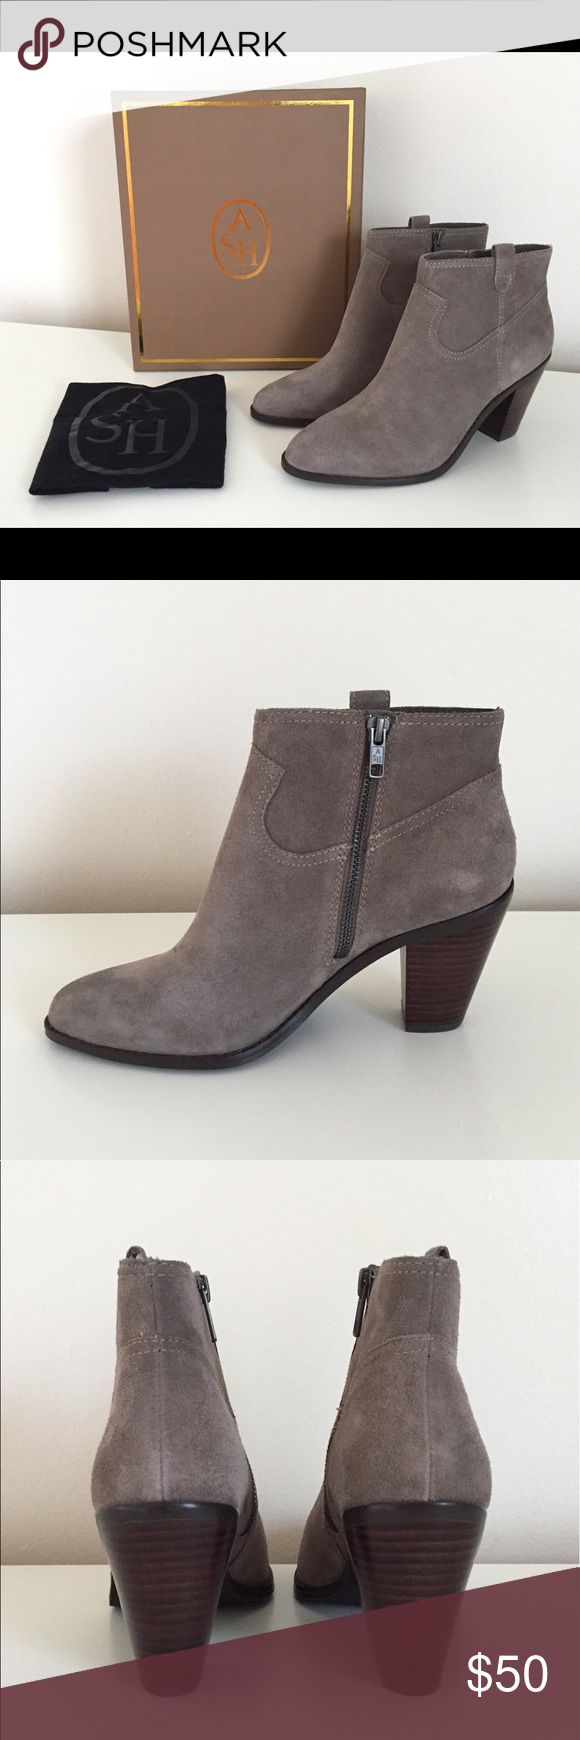 New Ash Suede Ankle Boots Ash suede ankle boots. New in box, includes original dust-bag and shoe box. Size: US 10/ EU 40/UK 8 . Heel height: 3.5 Ash Shoes Ankle Boots & Booties